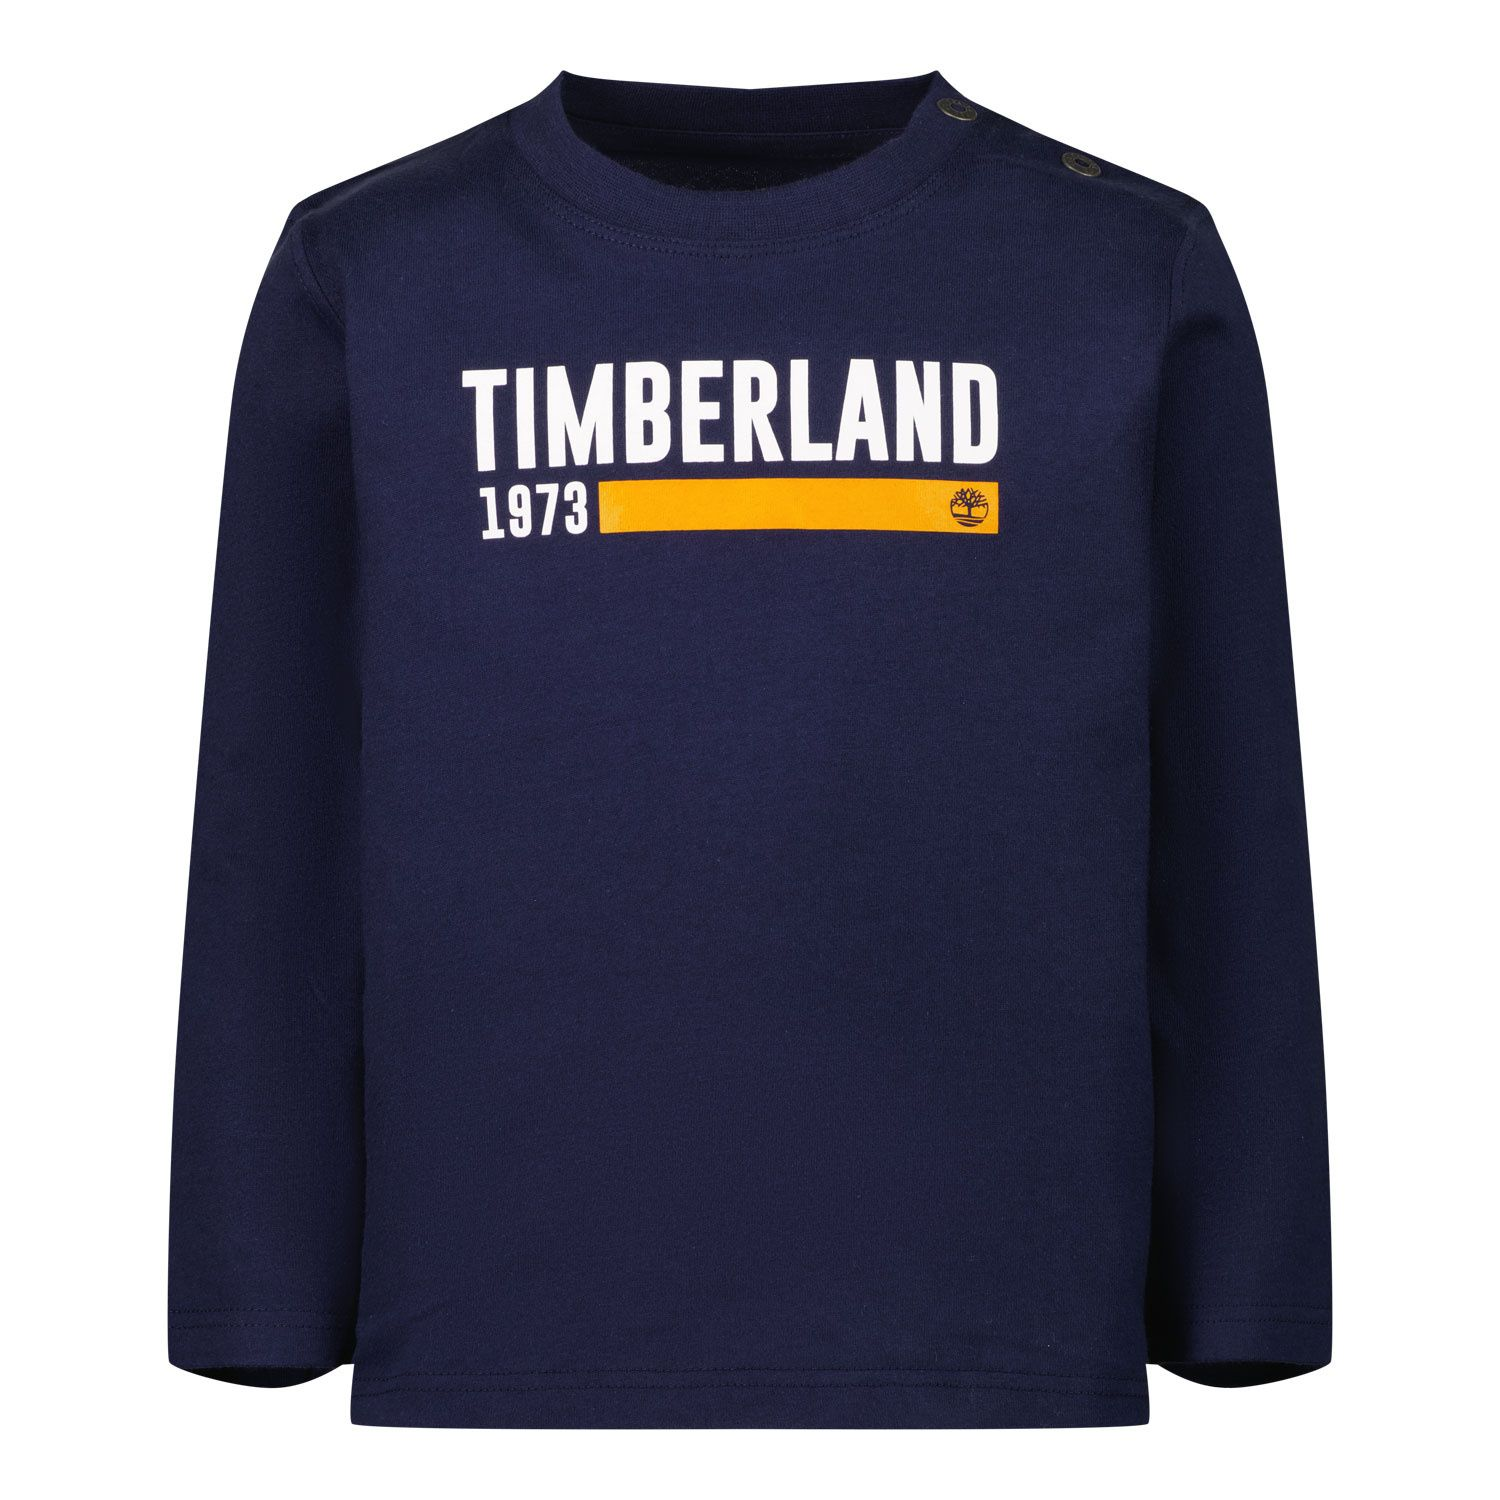 Picture of Timberland T05K17 baby shirt navy